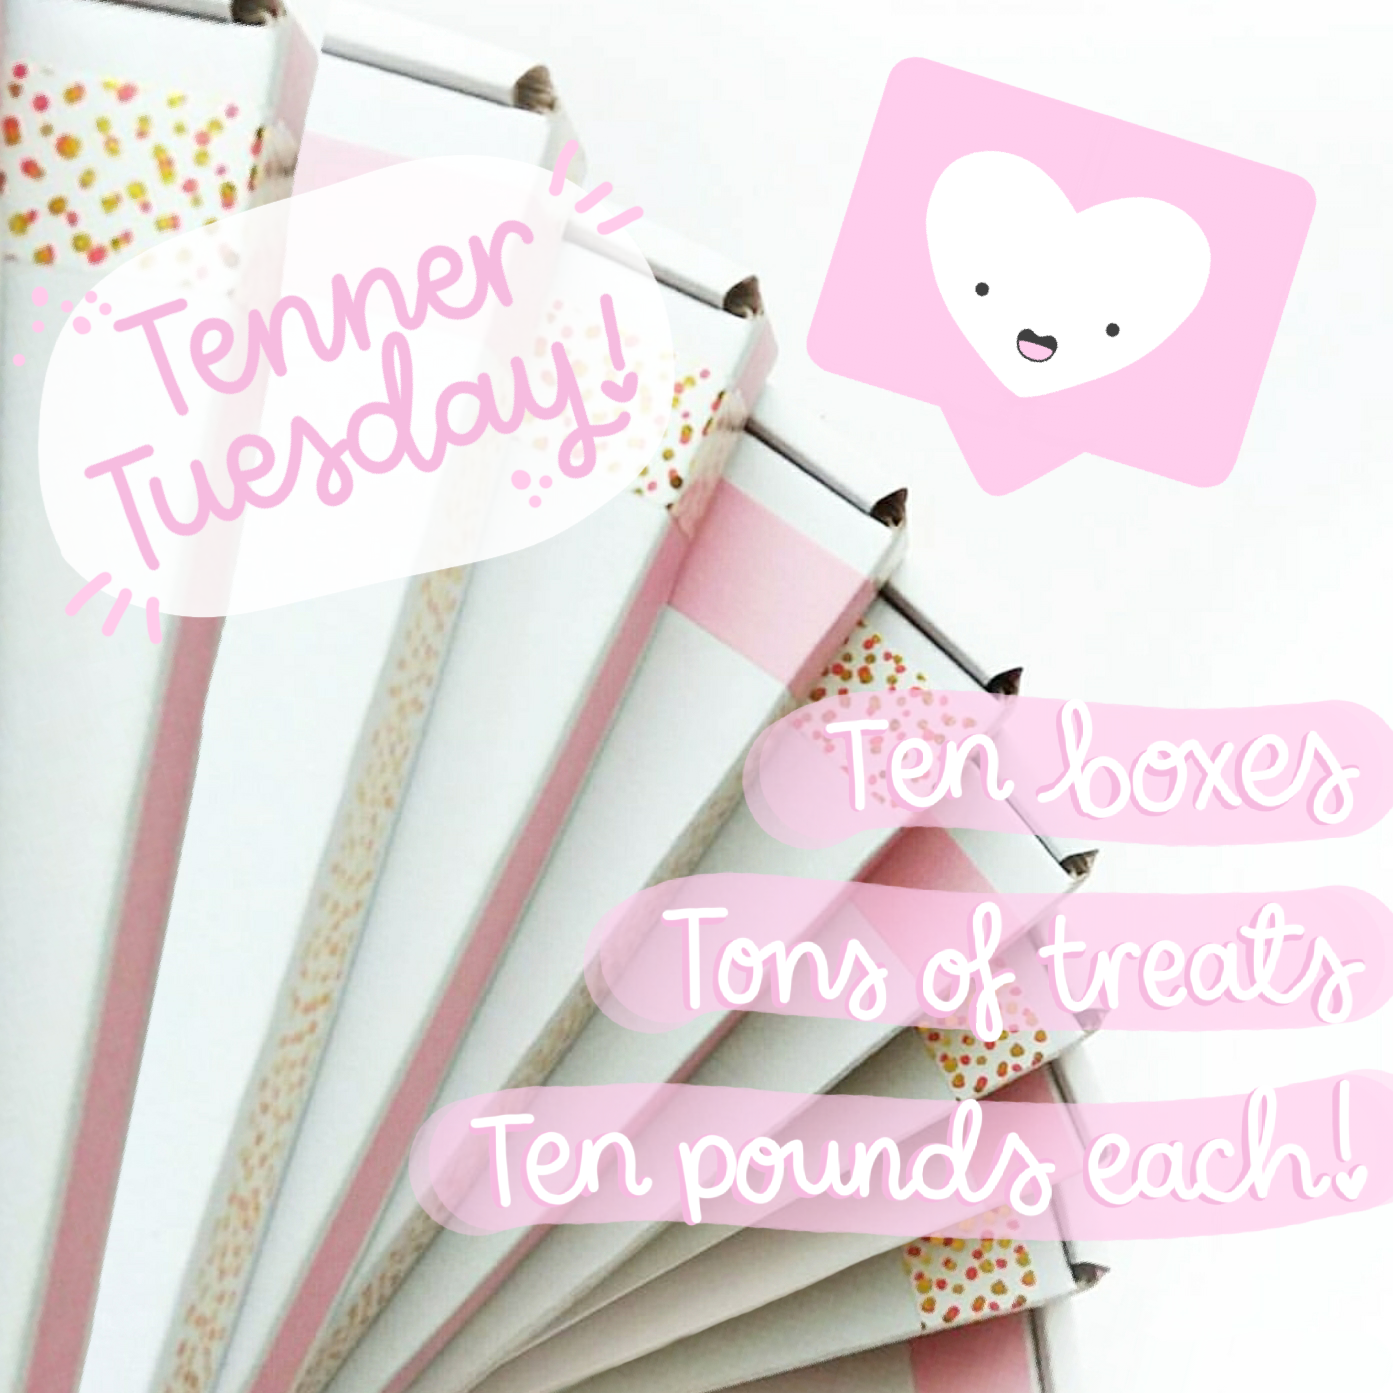 Image of Tenner Tuesday - Boxes of Bargain Treats!